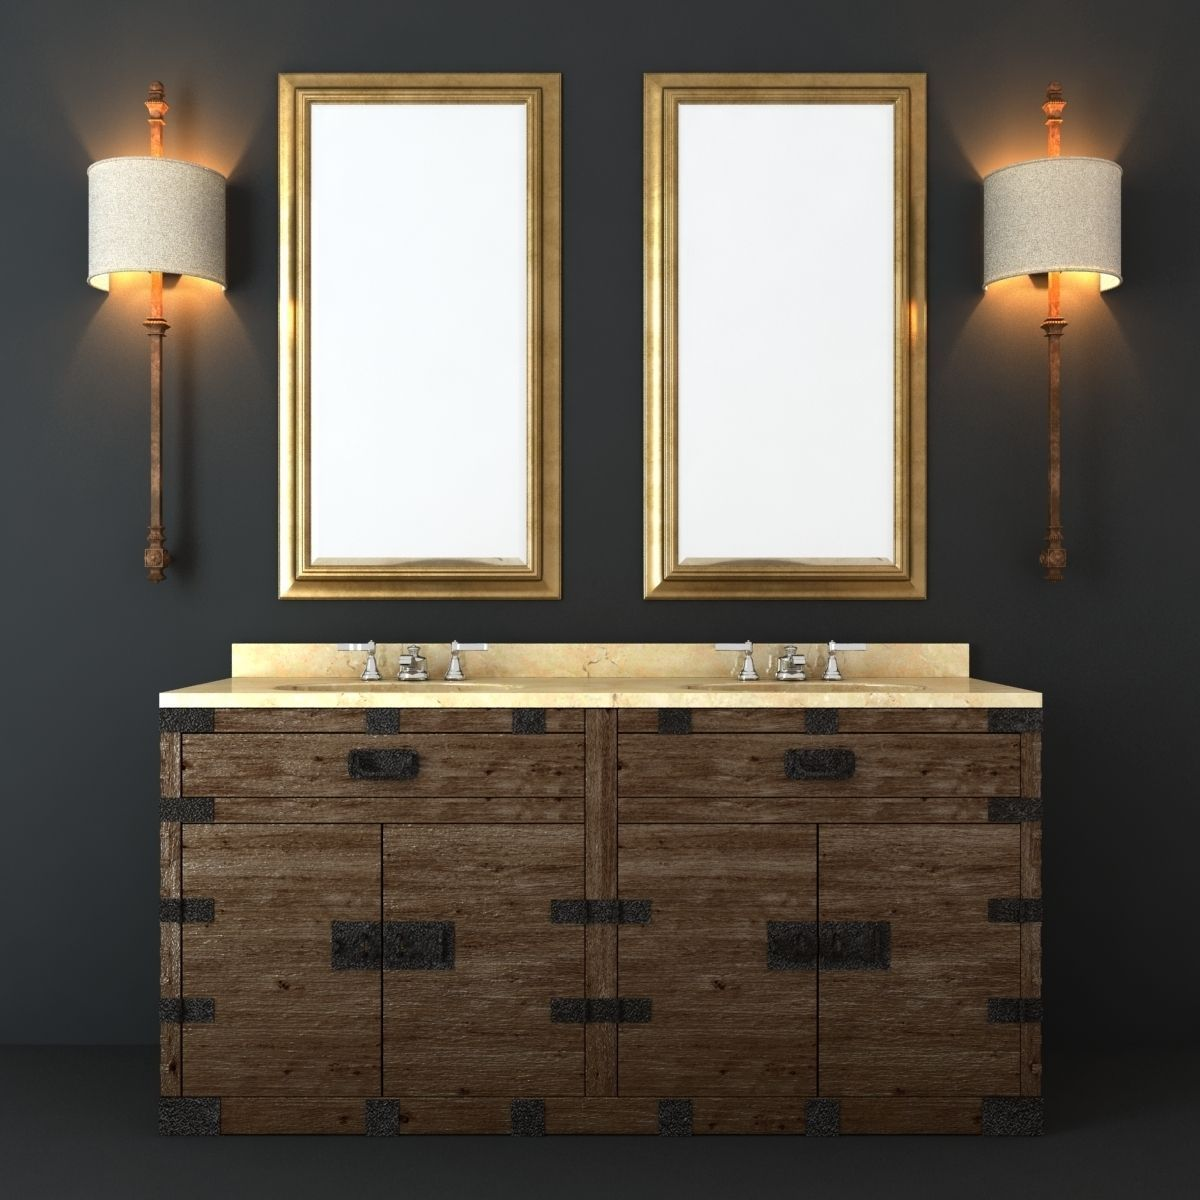 Bathroom Furniture Set Model Max Obj Fbx